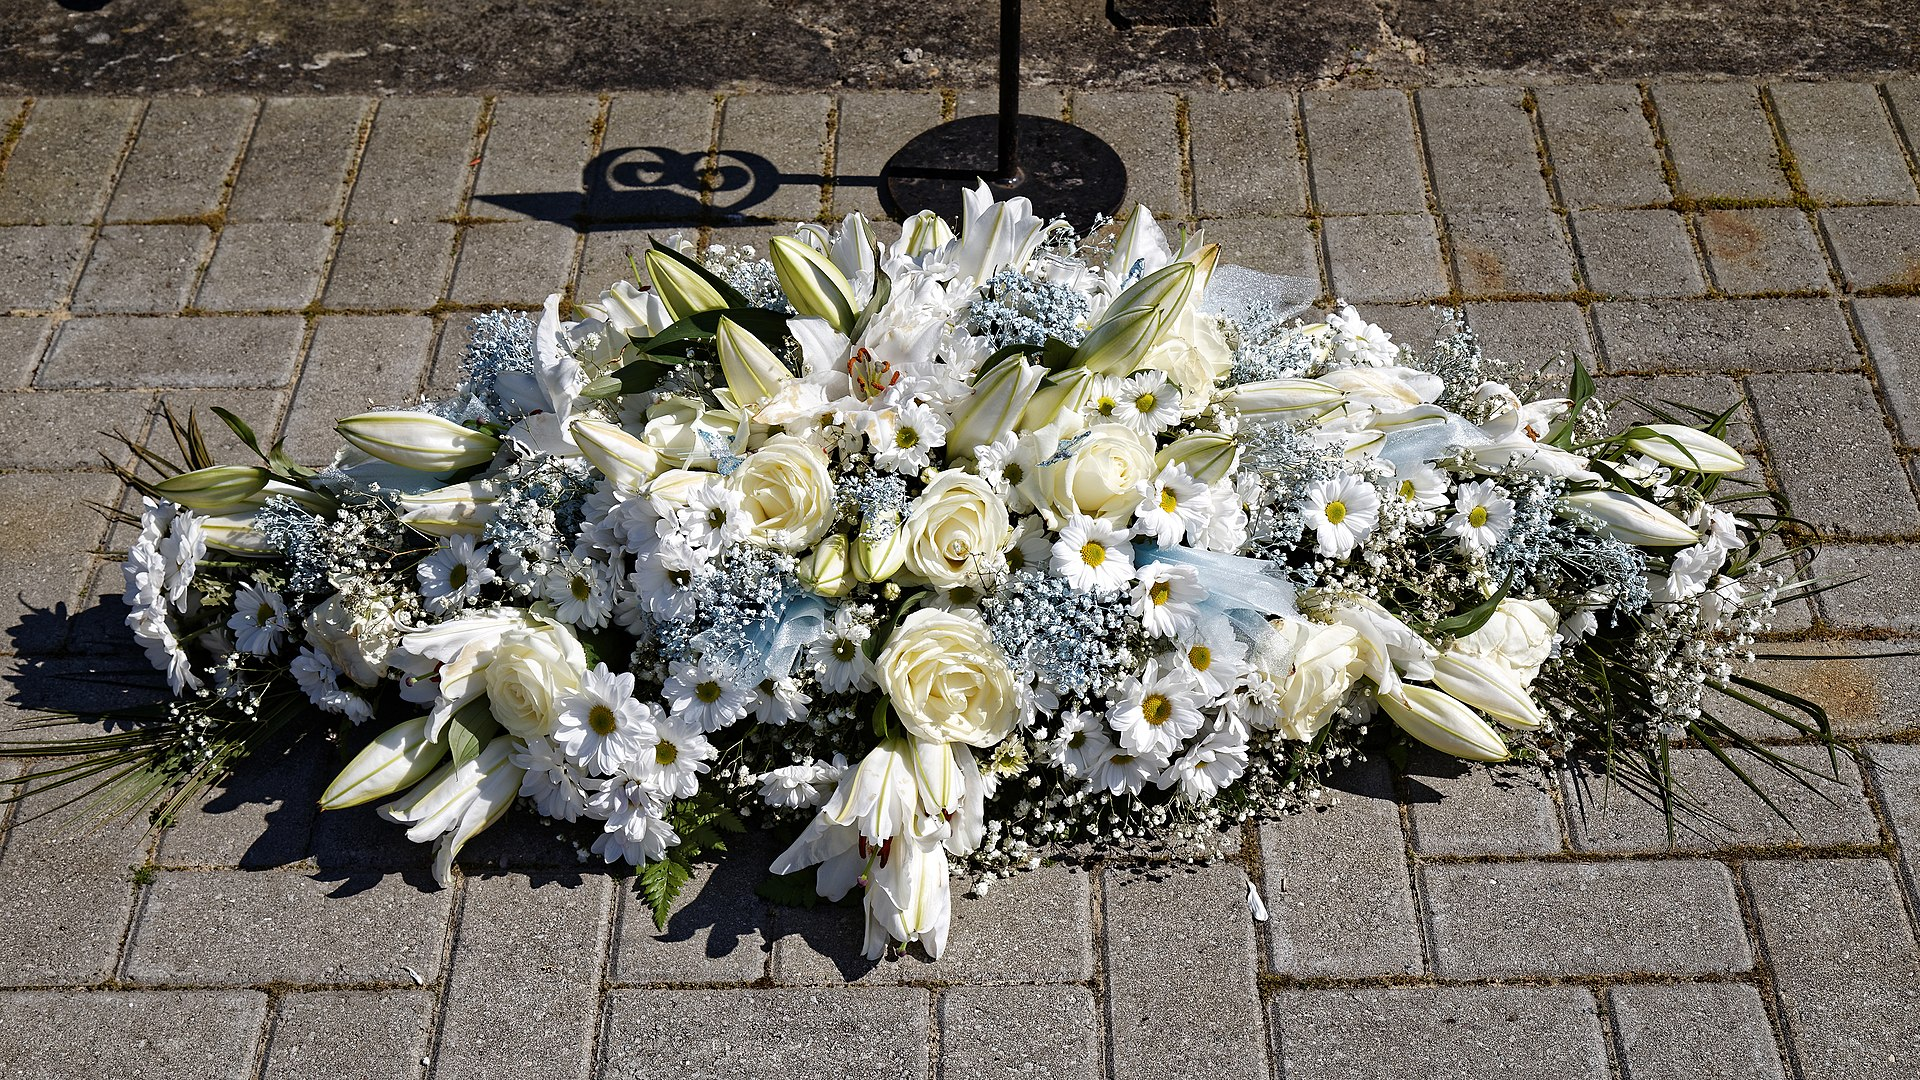 1920px-City_of_London_Cemetery_and_Crematorium_~_floral_tribute_-_White_wreath